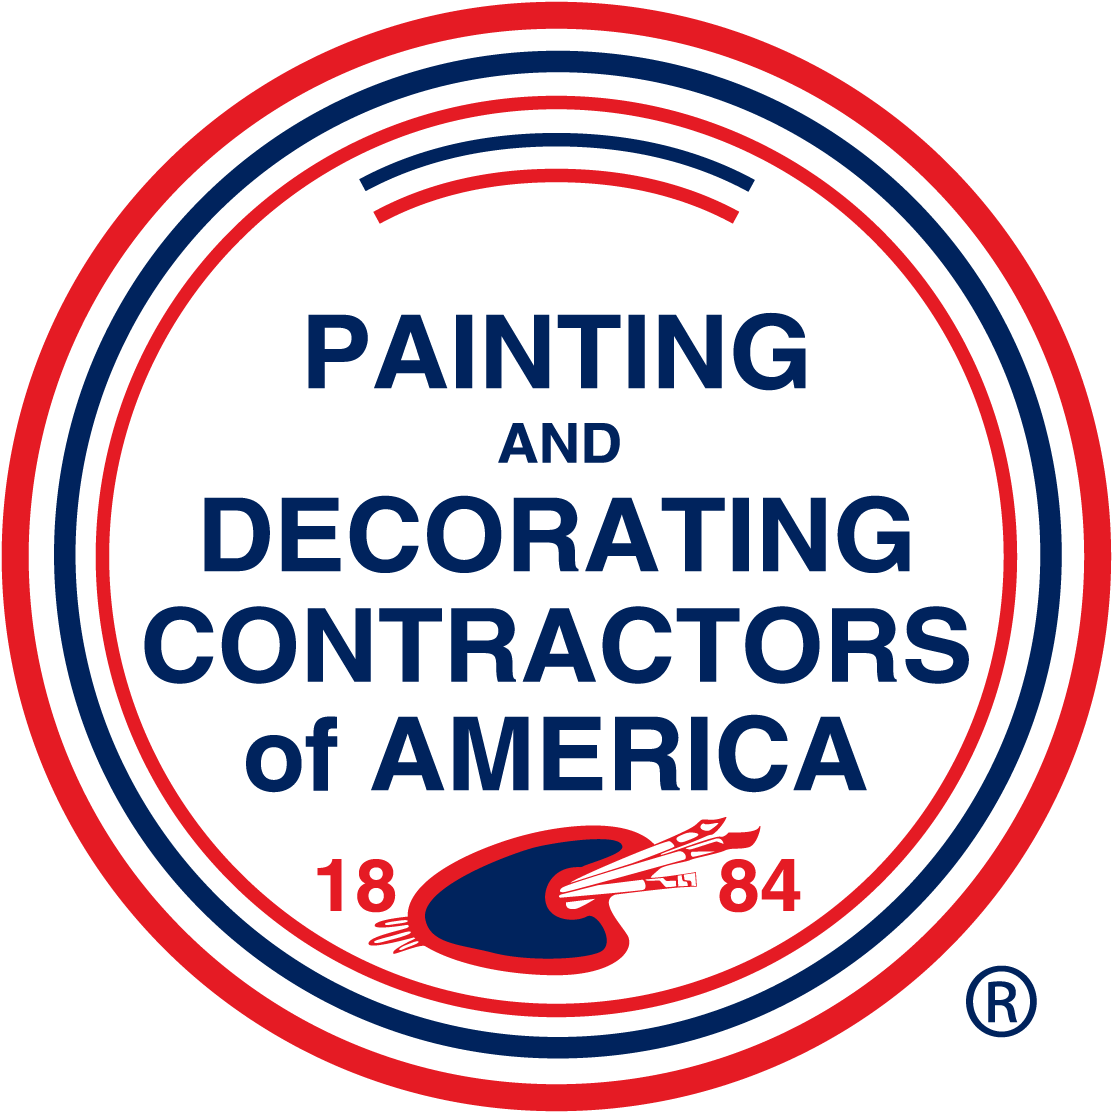 kisspng-painting-and-decorating-contractors-of-america-hou-5af443e68c1620.1260993315259576065738